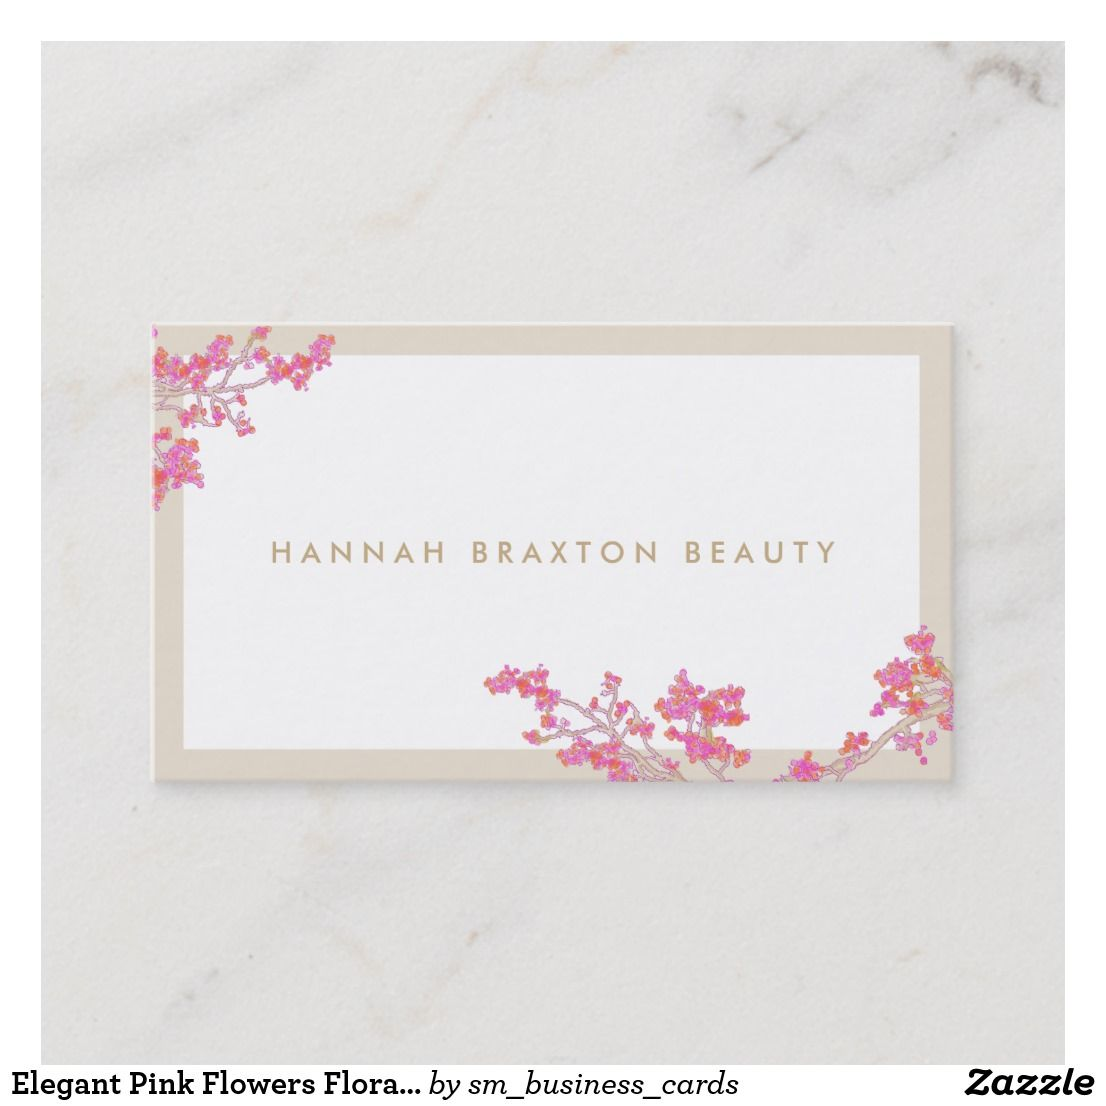 Elegant Pink Flowers Floral Art Beauty Salon Business Card